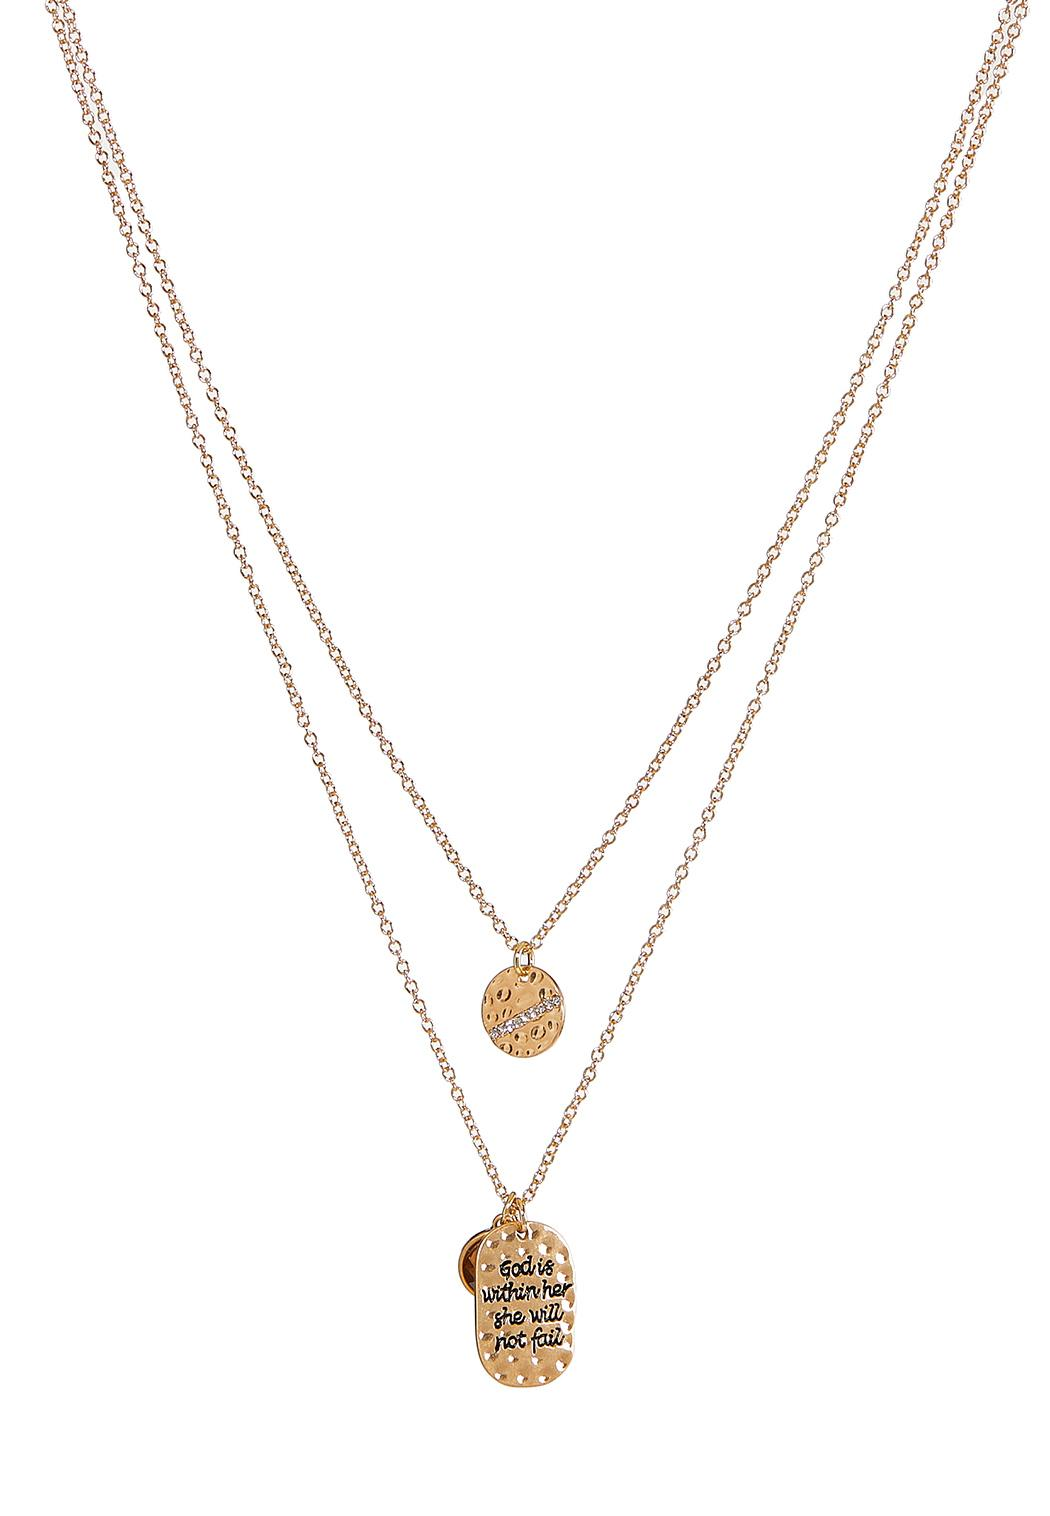 God Is Within Her Charm Necklace